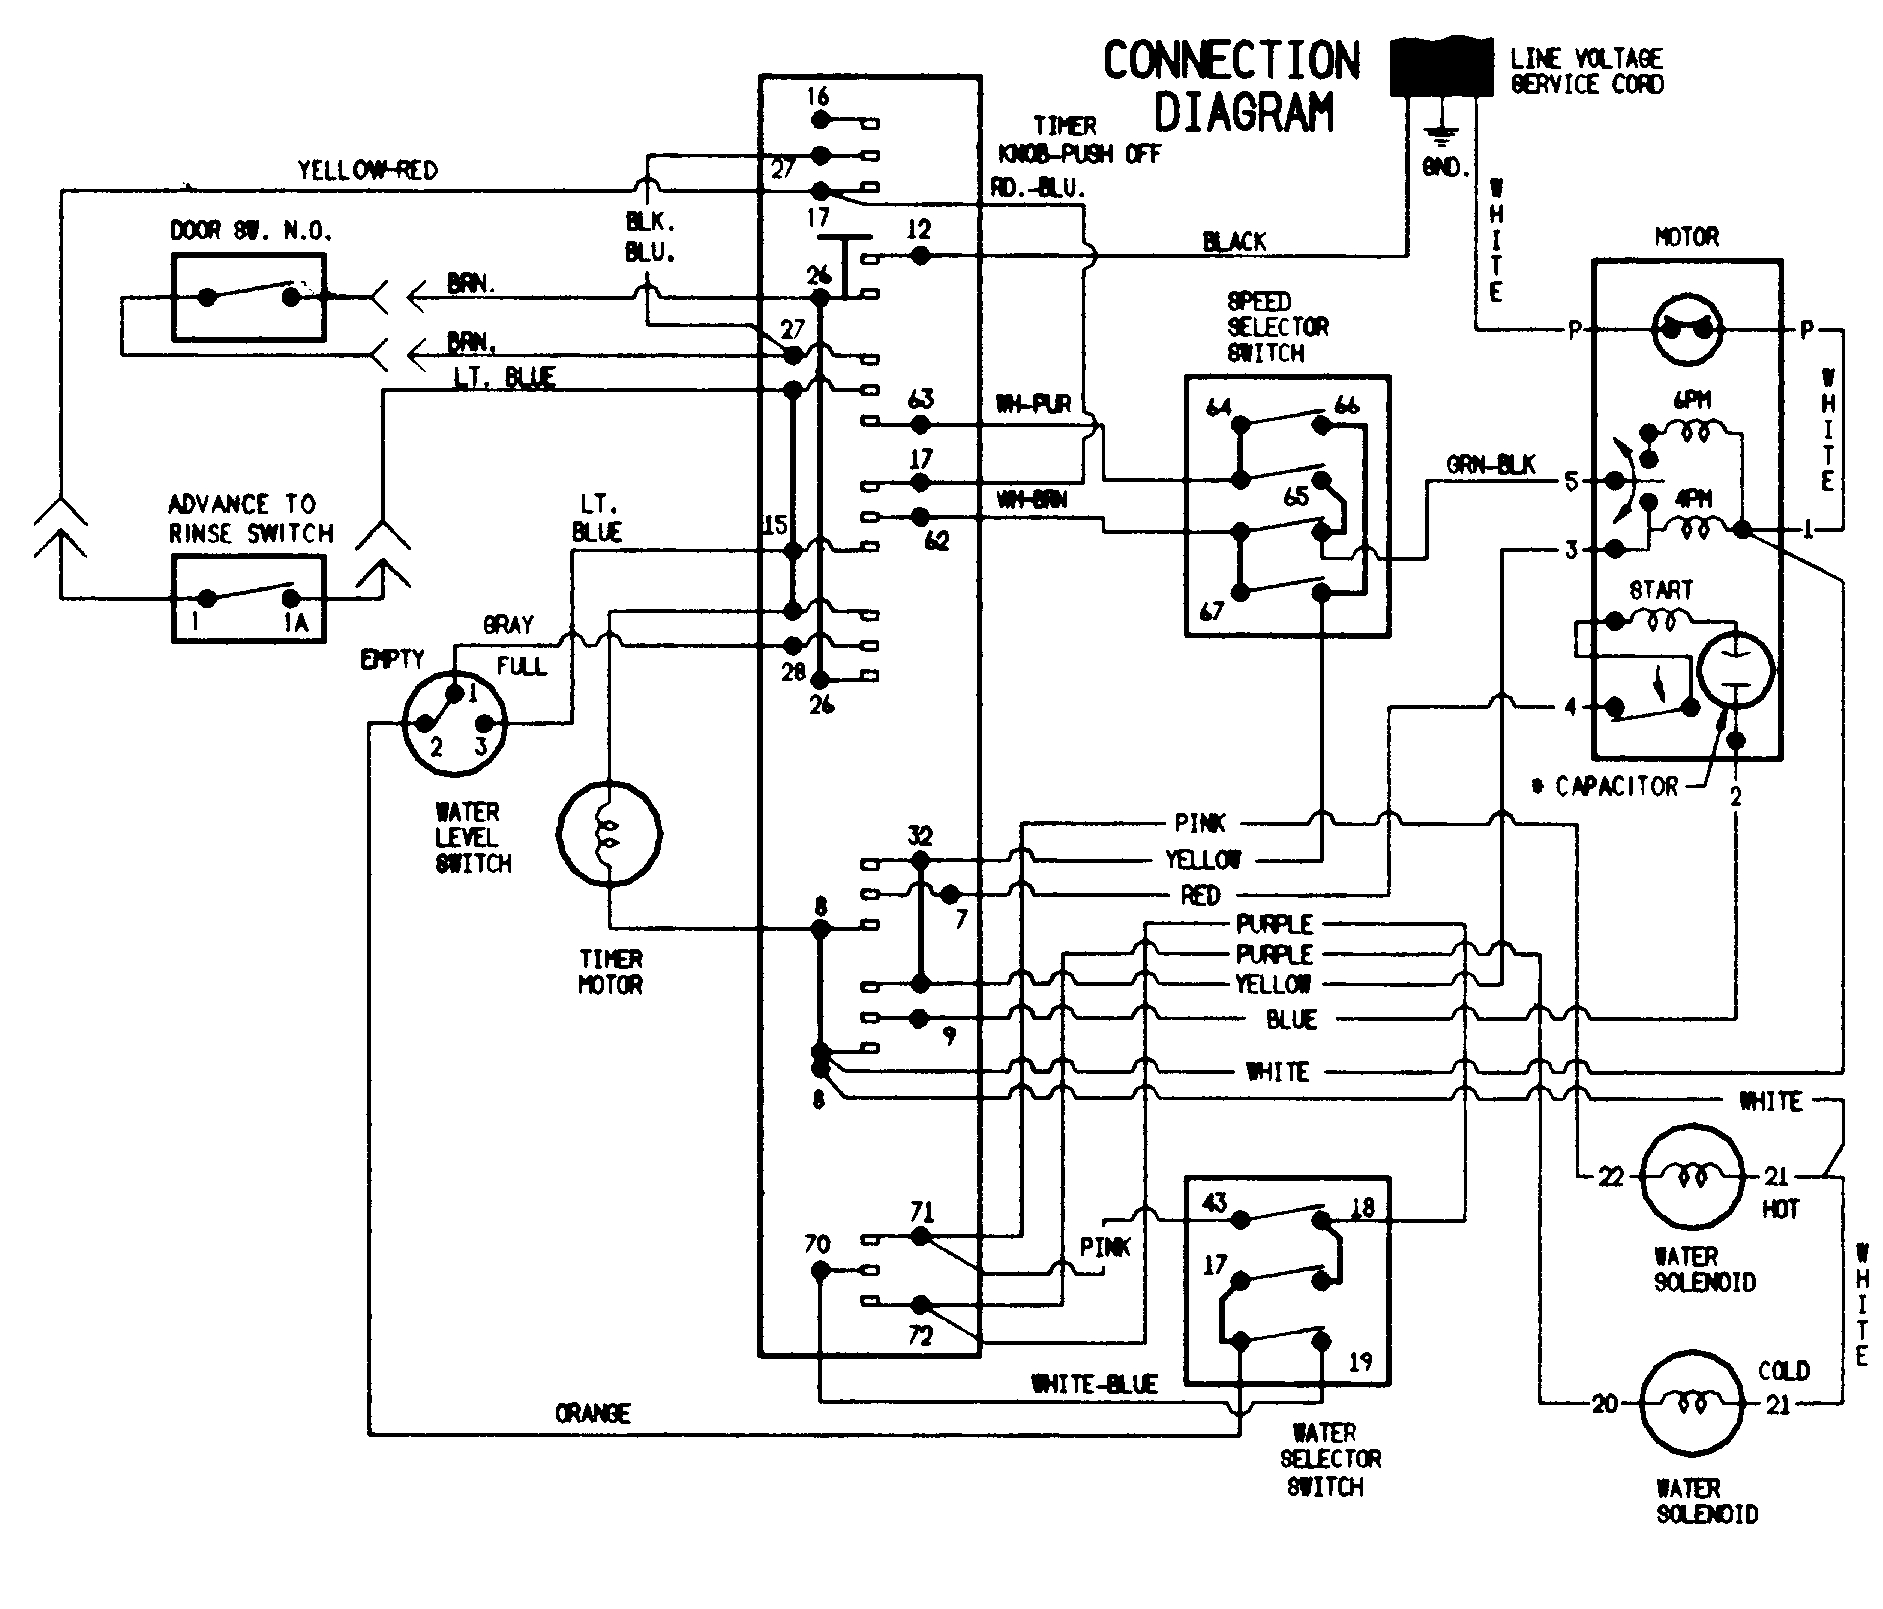 kenmore 80 series dryer parts diagram | automotive parts ... kenmore dryer wiring schematic diagrams kenmore dryer wiring diagram 220 #4